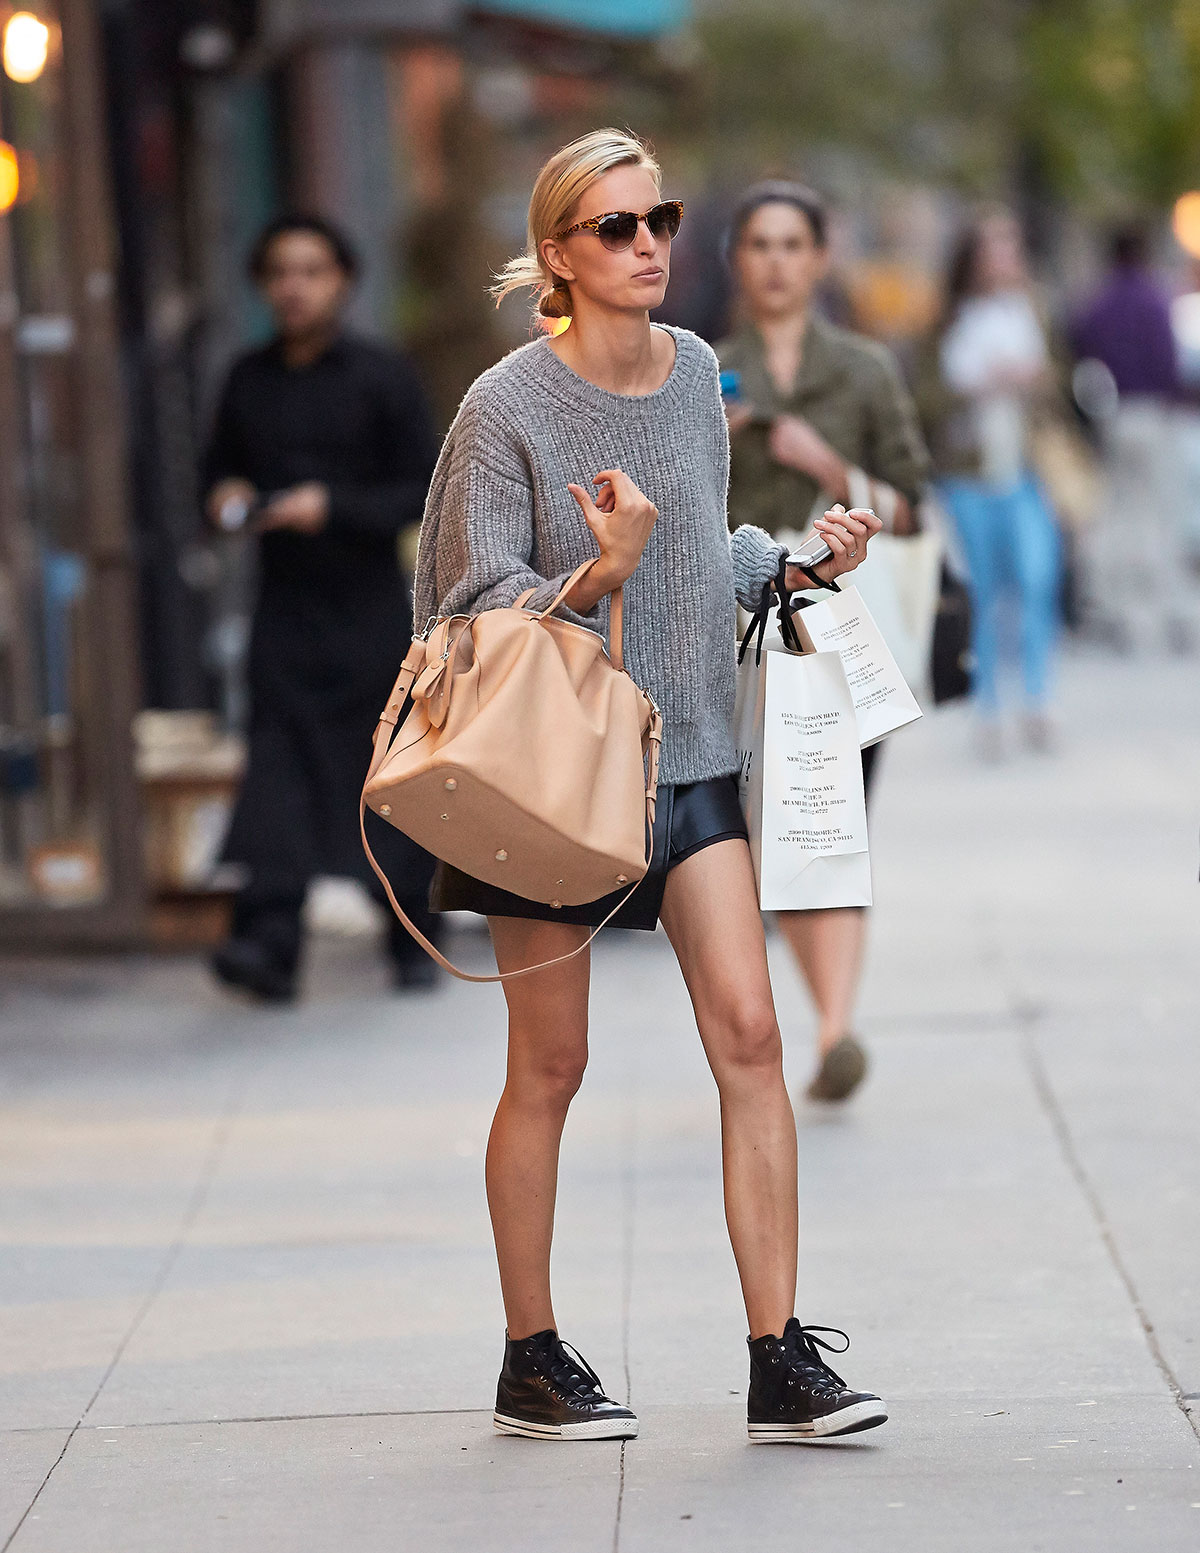 Karolina Kurkova in NYC